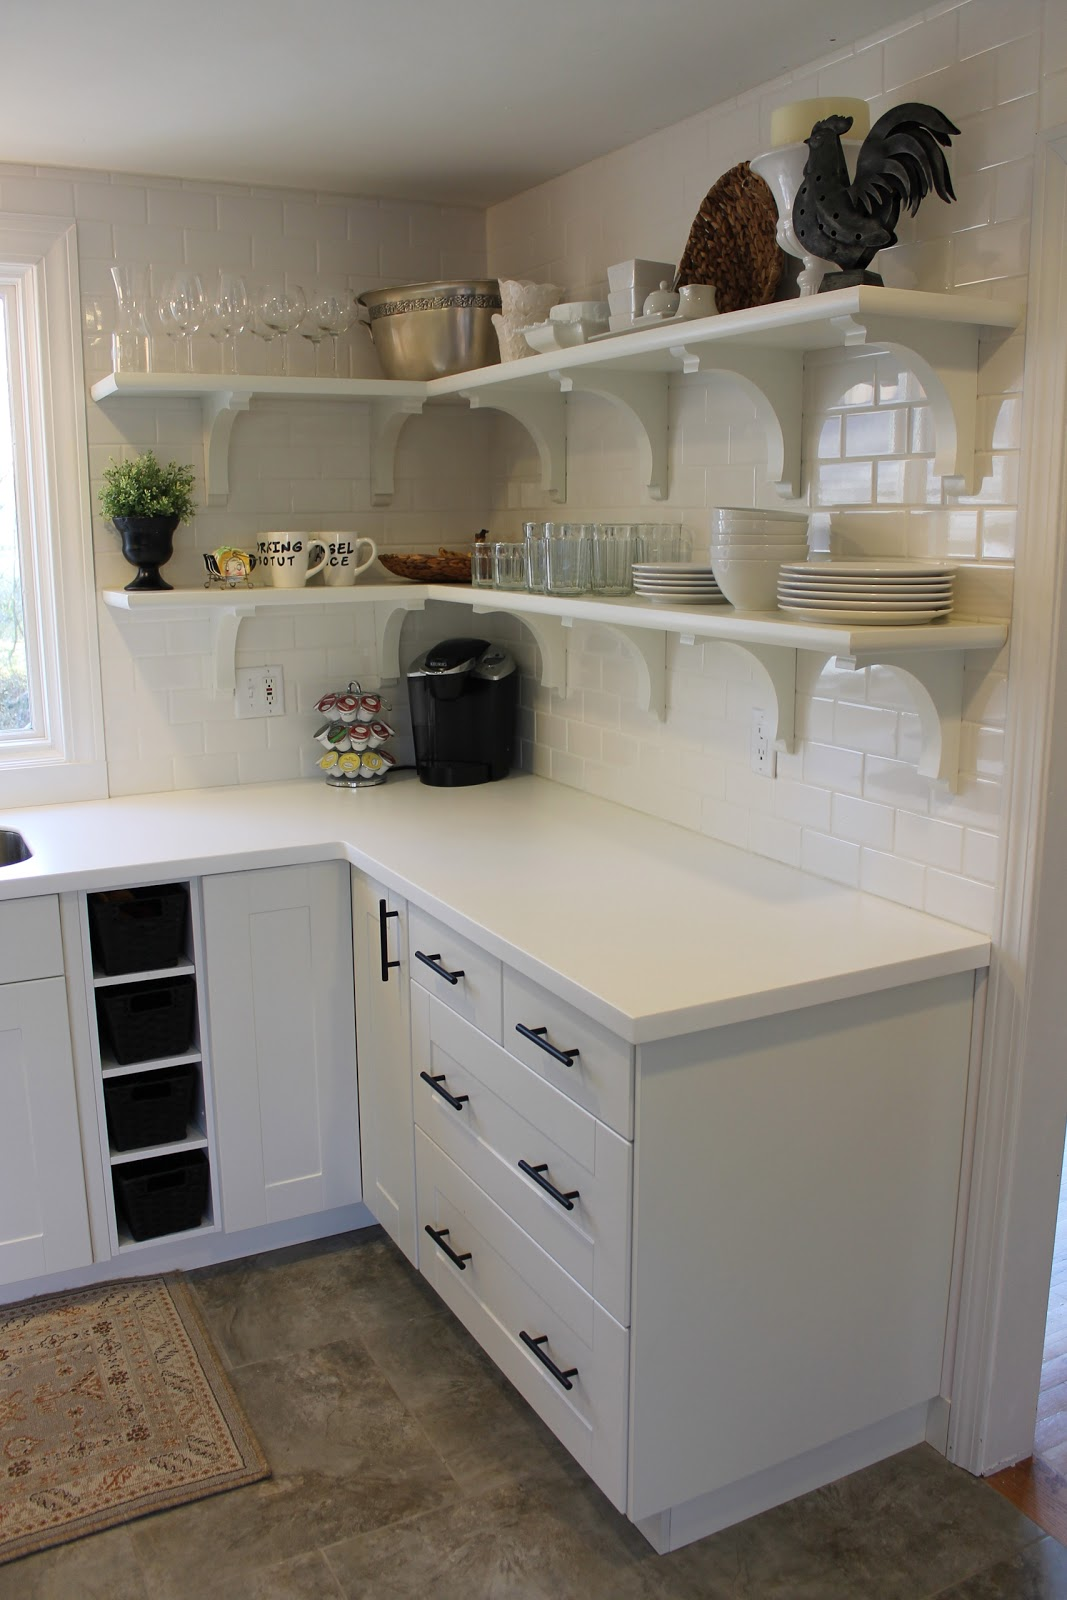 Backsplash White Subway Tile Lowes Countertops White Corian The Allen